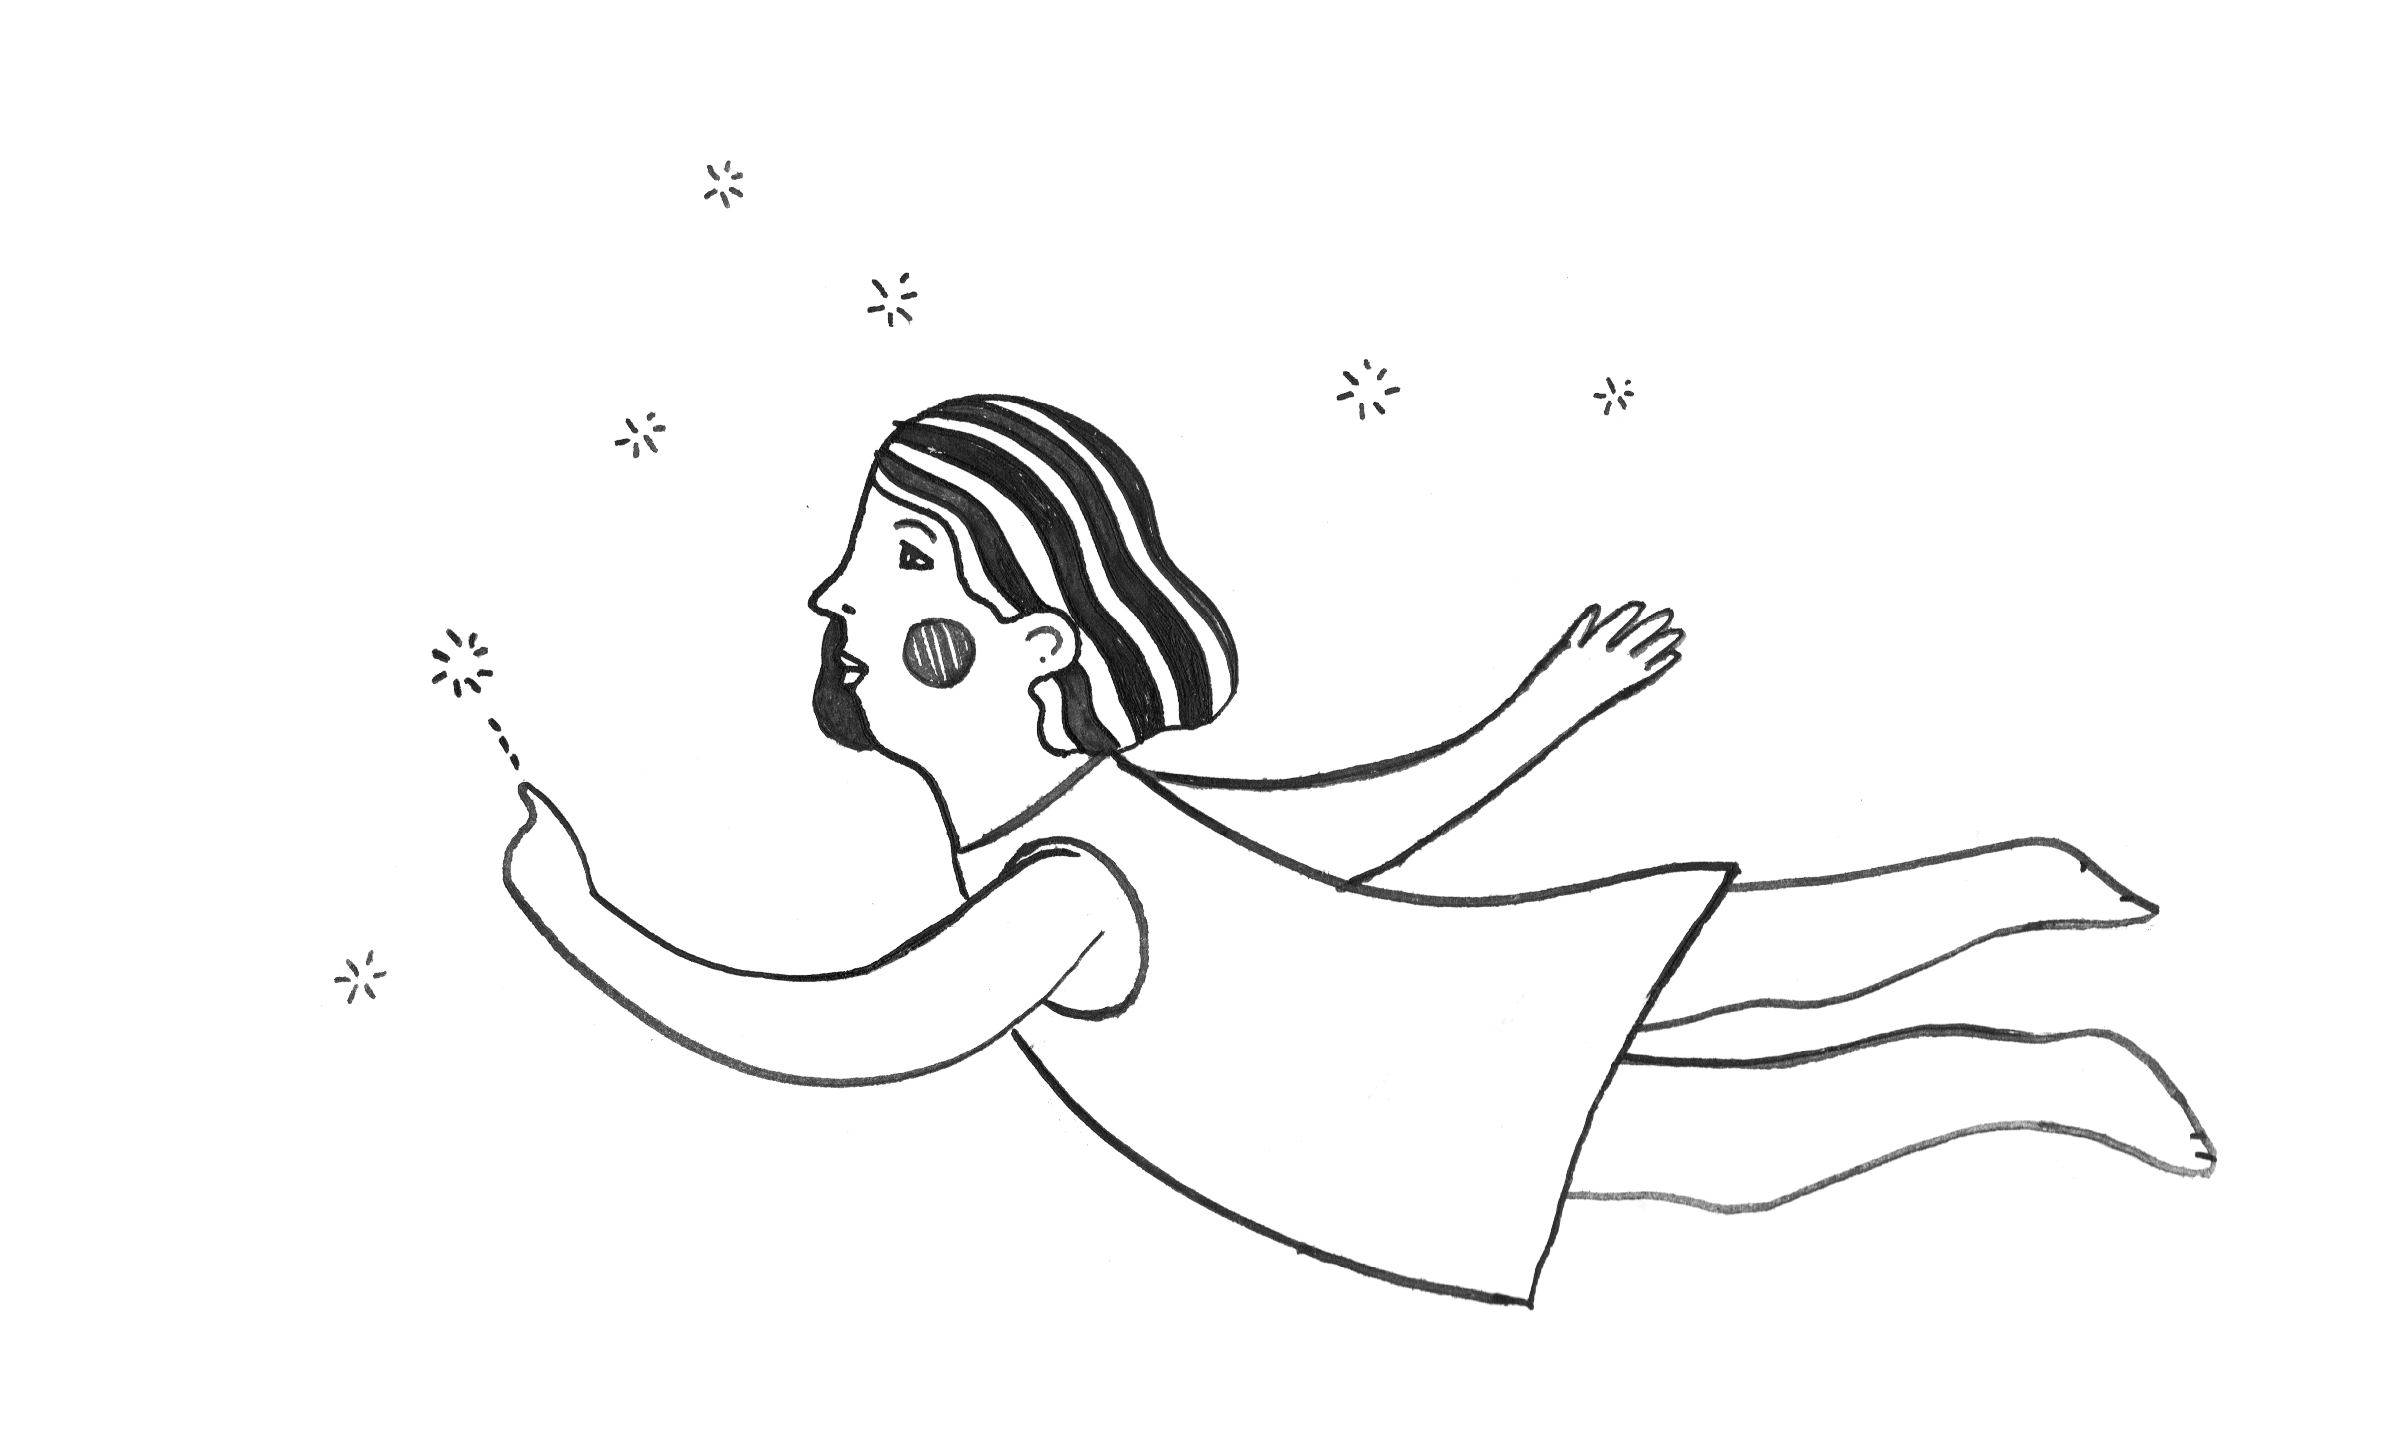 I sketched this quick little Star Gazer in my notebook and felt really inspired, so I whipped out my watercolour pad and made the drawing below.